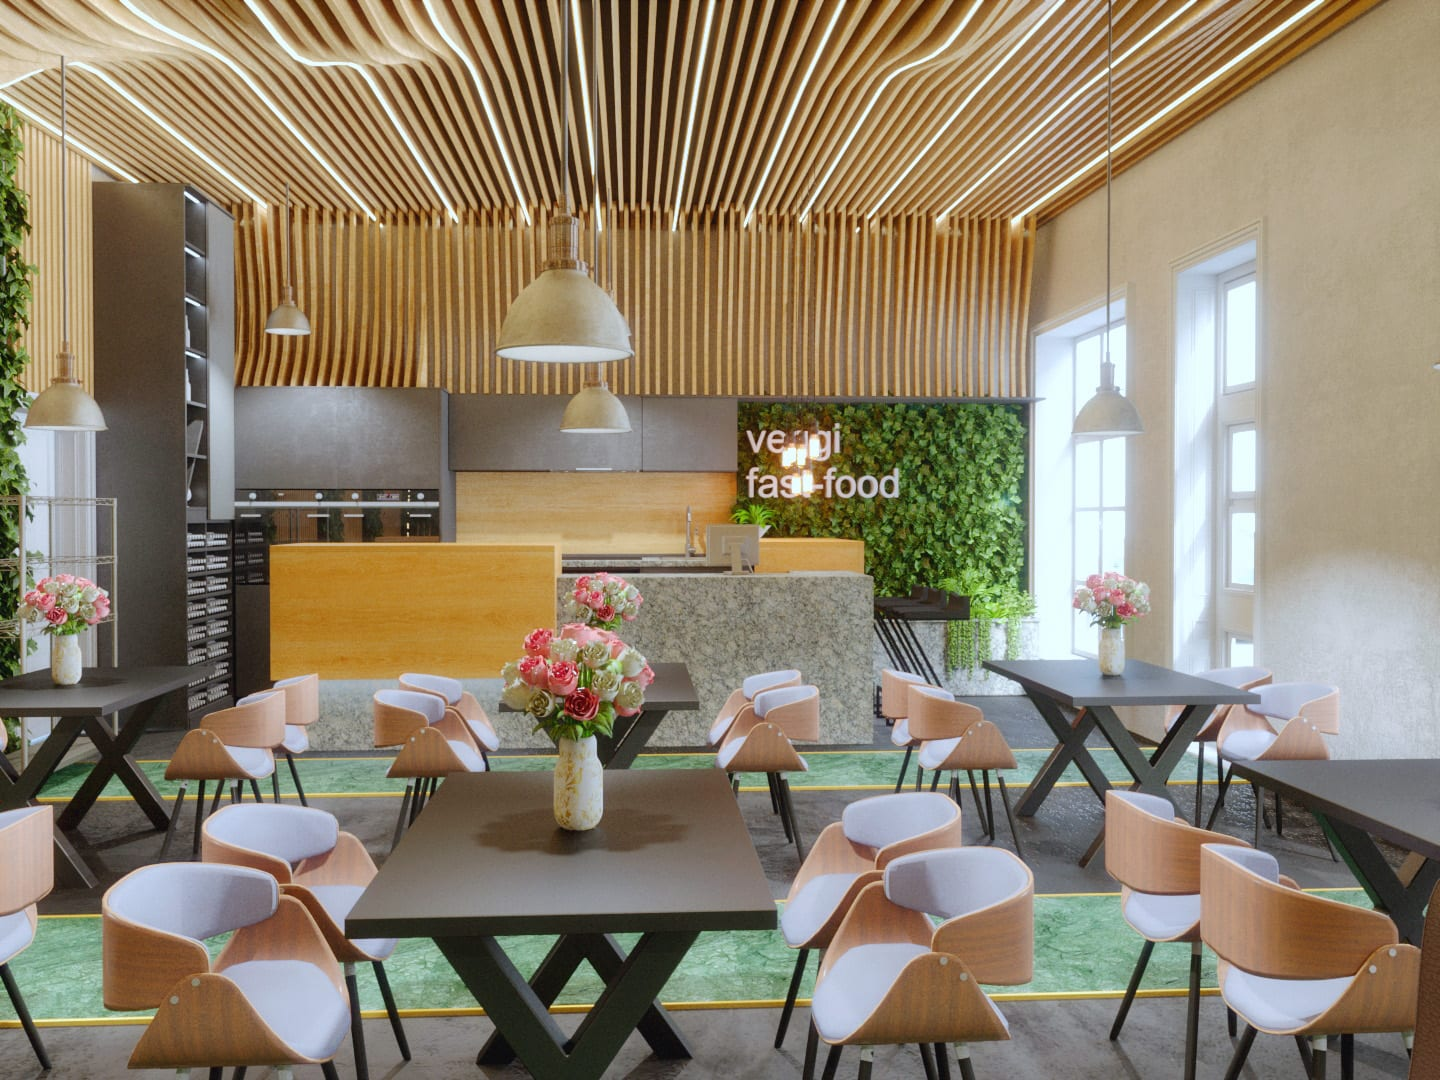 Fast food - design interior